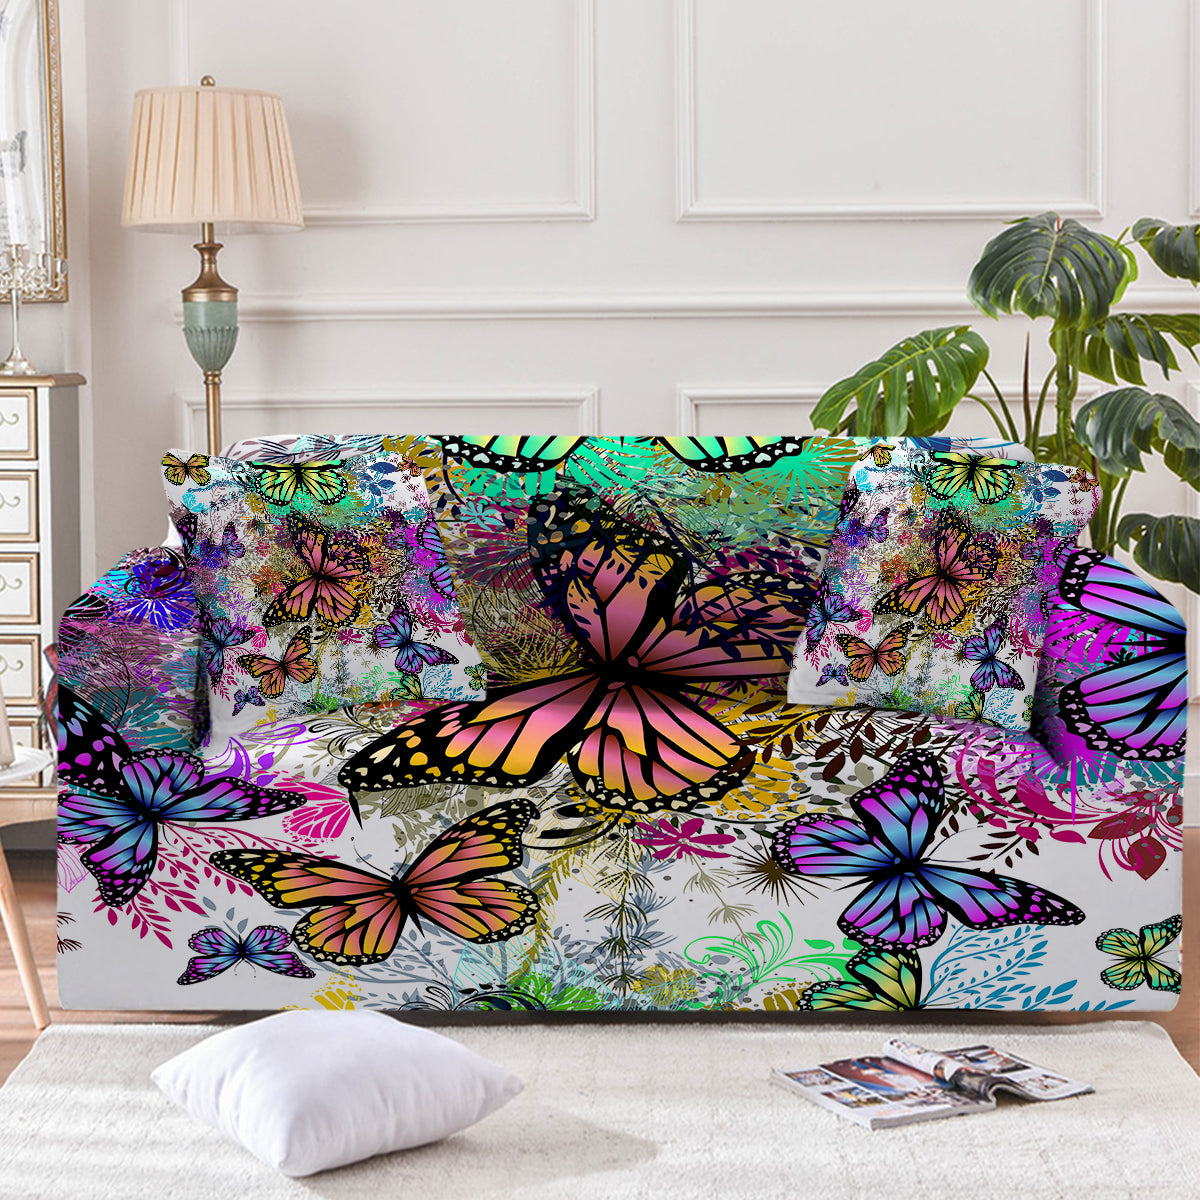 Tropical Butterflies Couch Cover